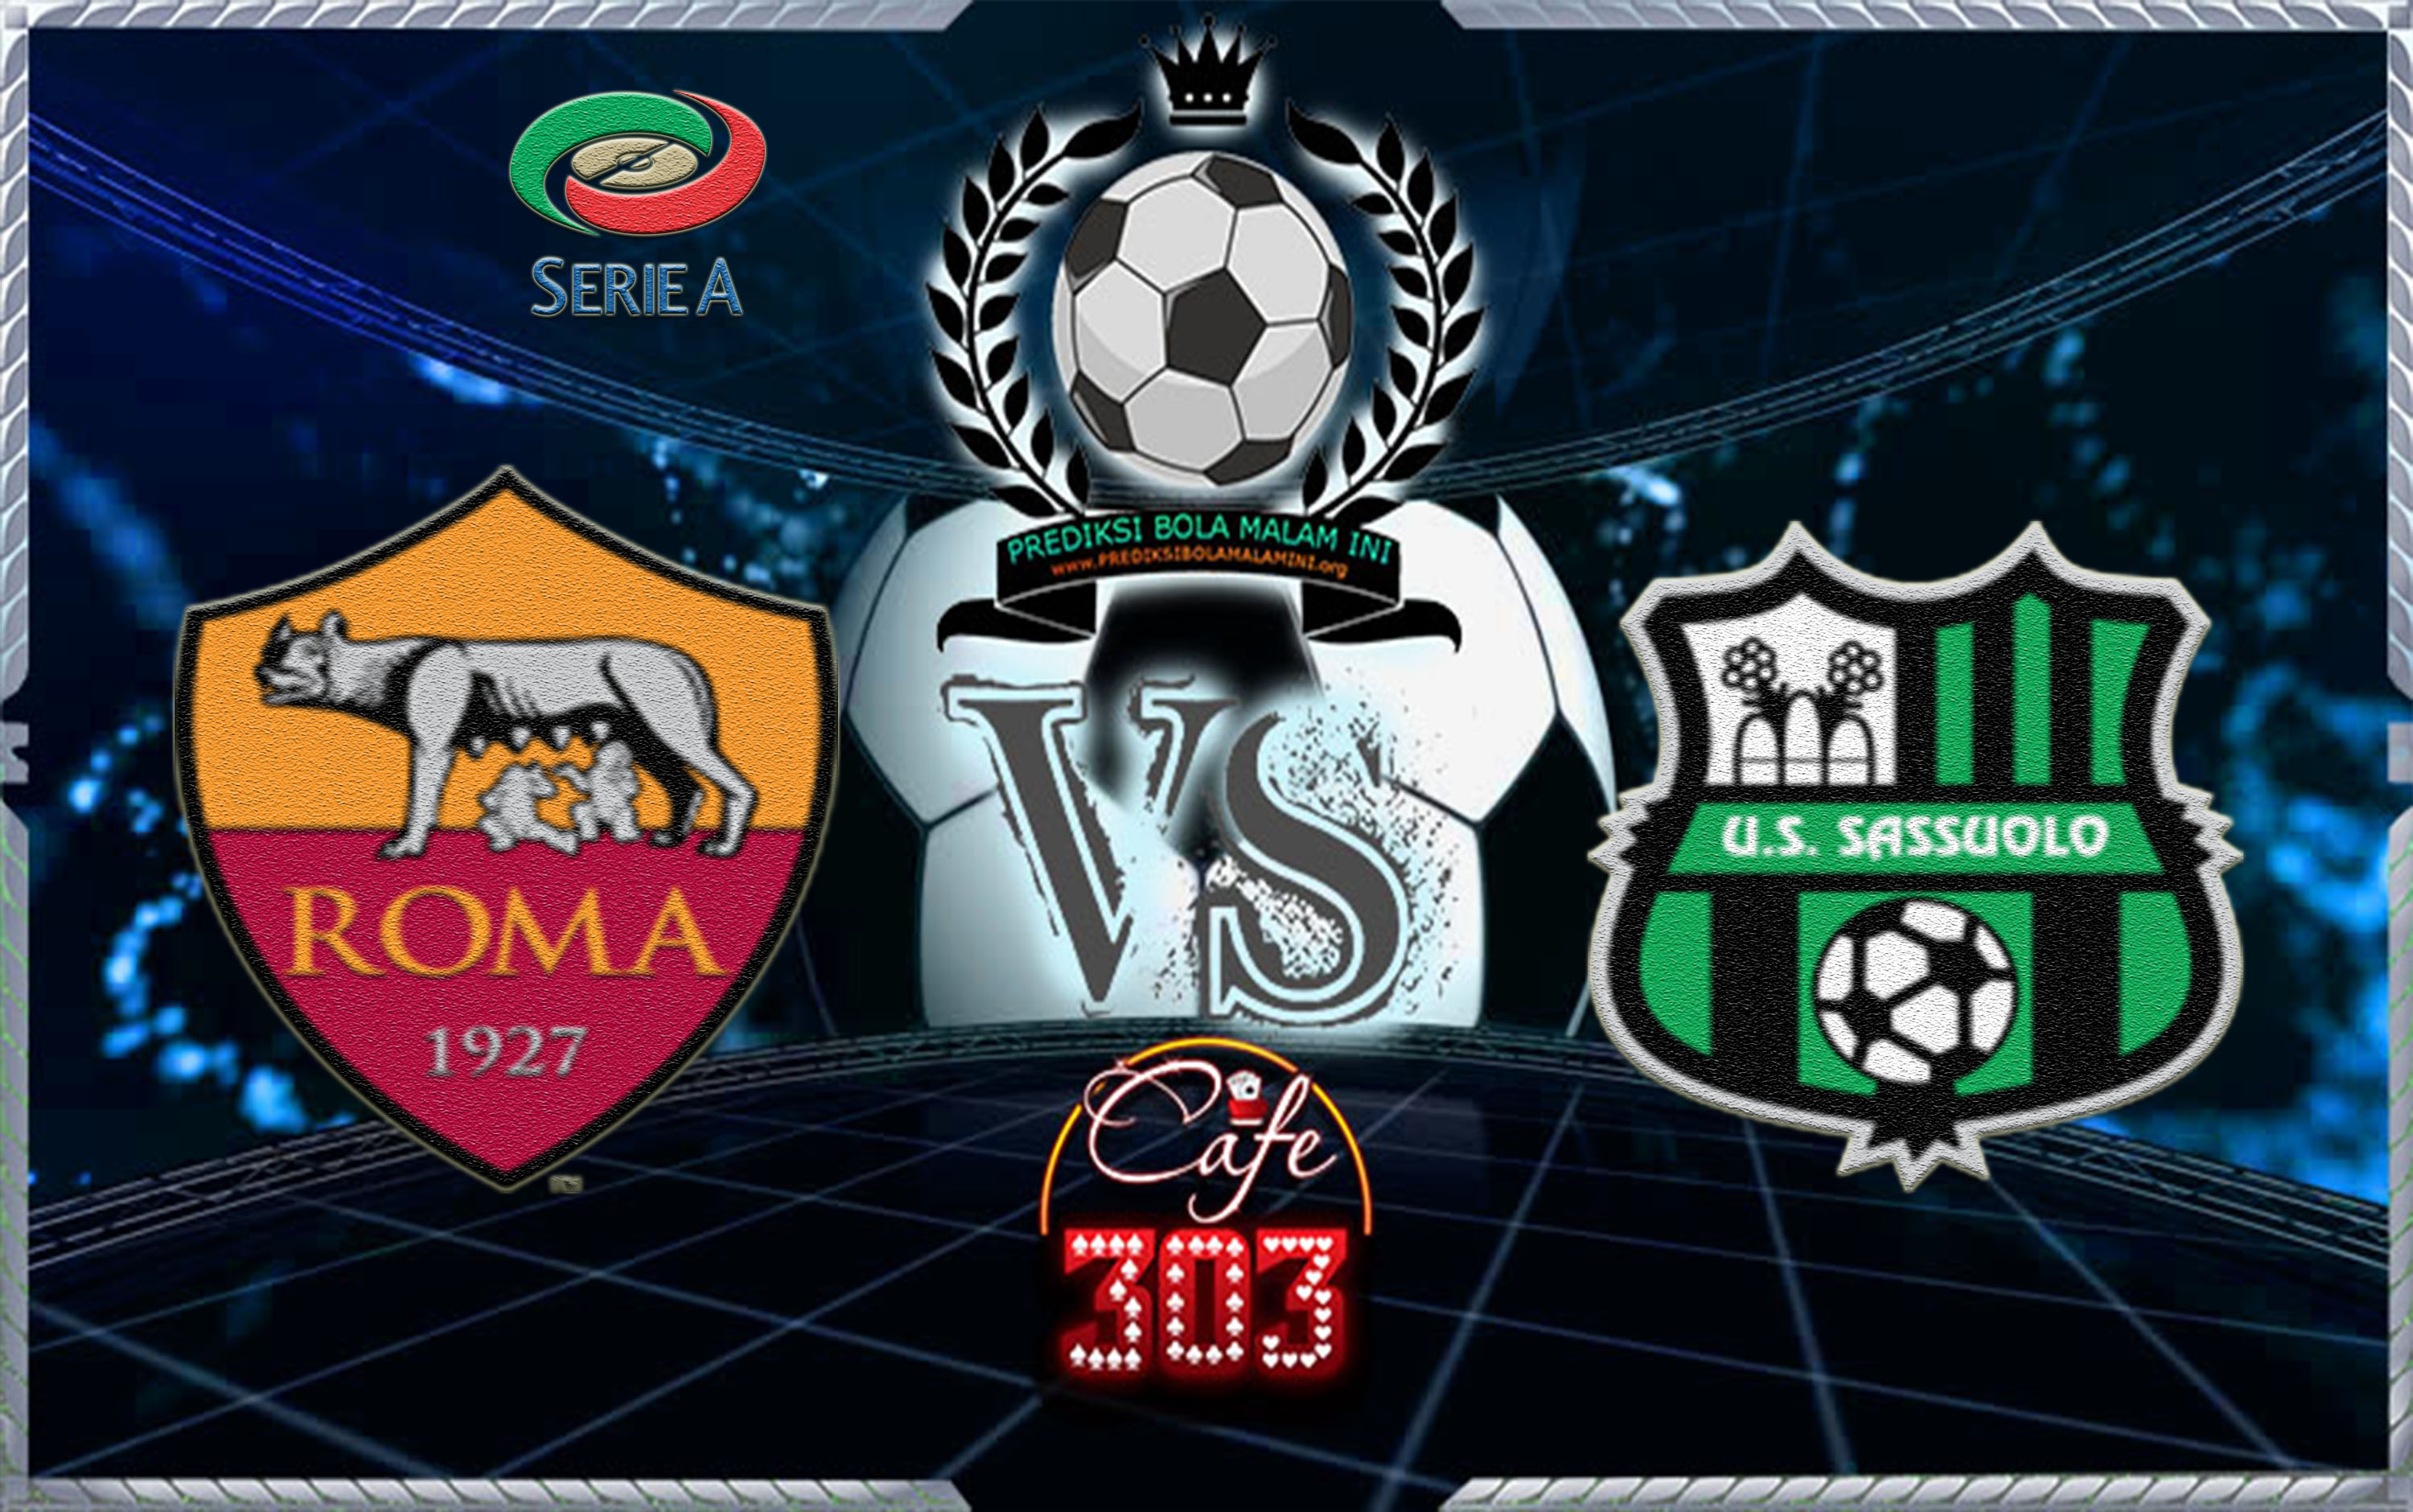 ROMA VS SASSUOLO &quot;width =&quot; 640 &quot;height =&quot; 401 &quot;/&gt; </p> <p><strong> <strong> <strong> <strong> <strong> <strong> <strong> [yo] akan di adakan pada tanggal 30 Desember 2017 Pada Pukul 21:00 WIB Di Stadion Stadion Olimpico (Roma) </p> <p> <span style=